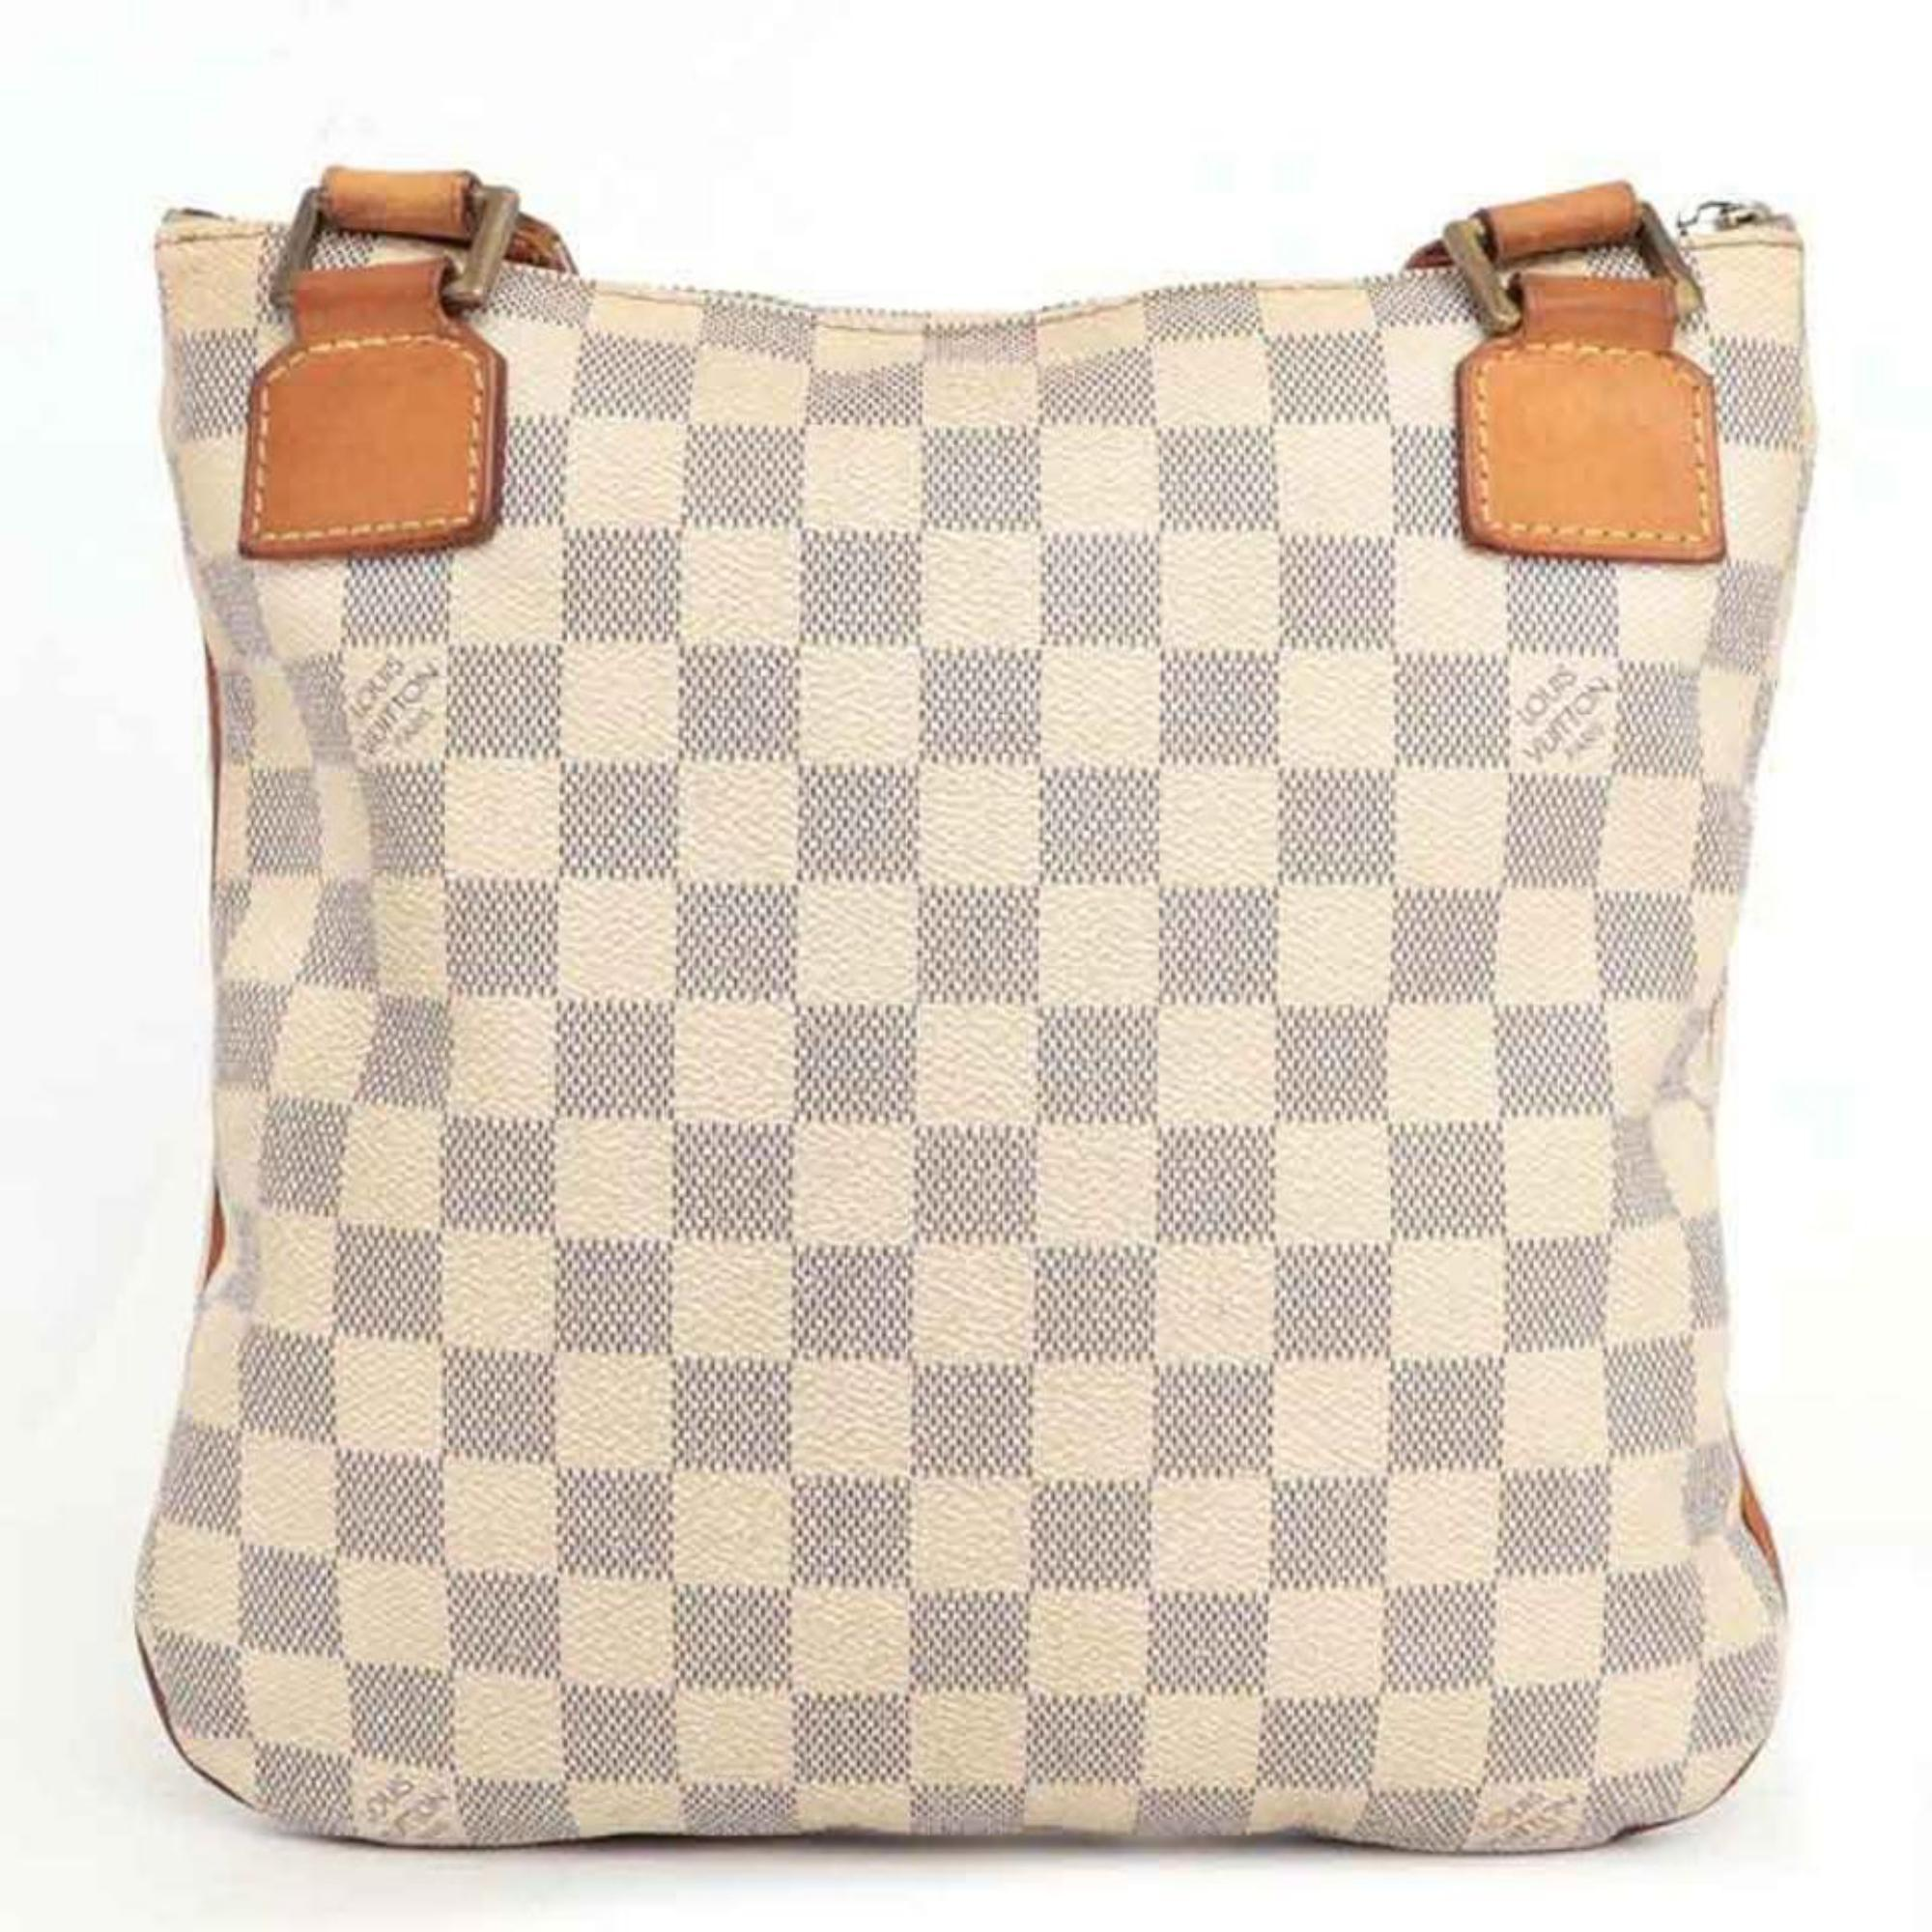 d31b862bce Louis Vuitton Bosphore Pochette Damier Azur 230342 White Cross Body Bag For  Sale at 1stdibs